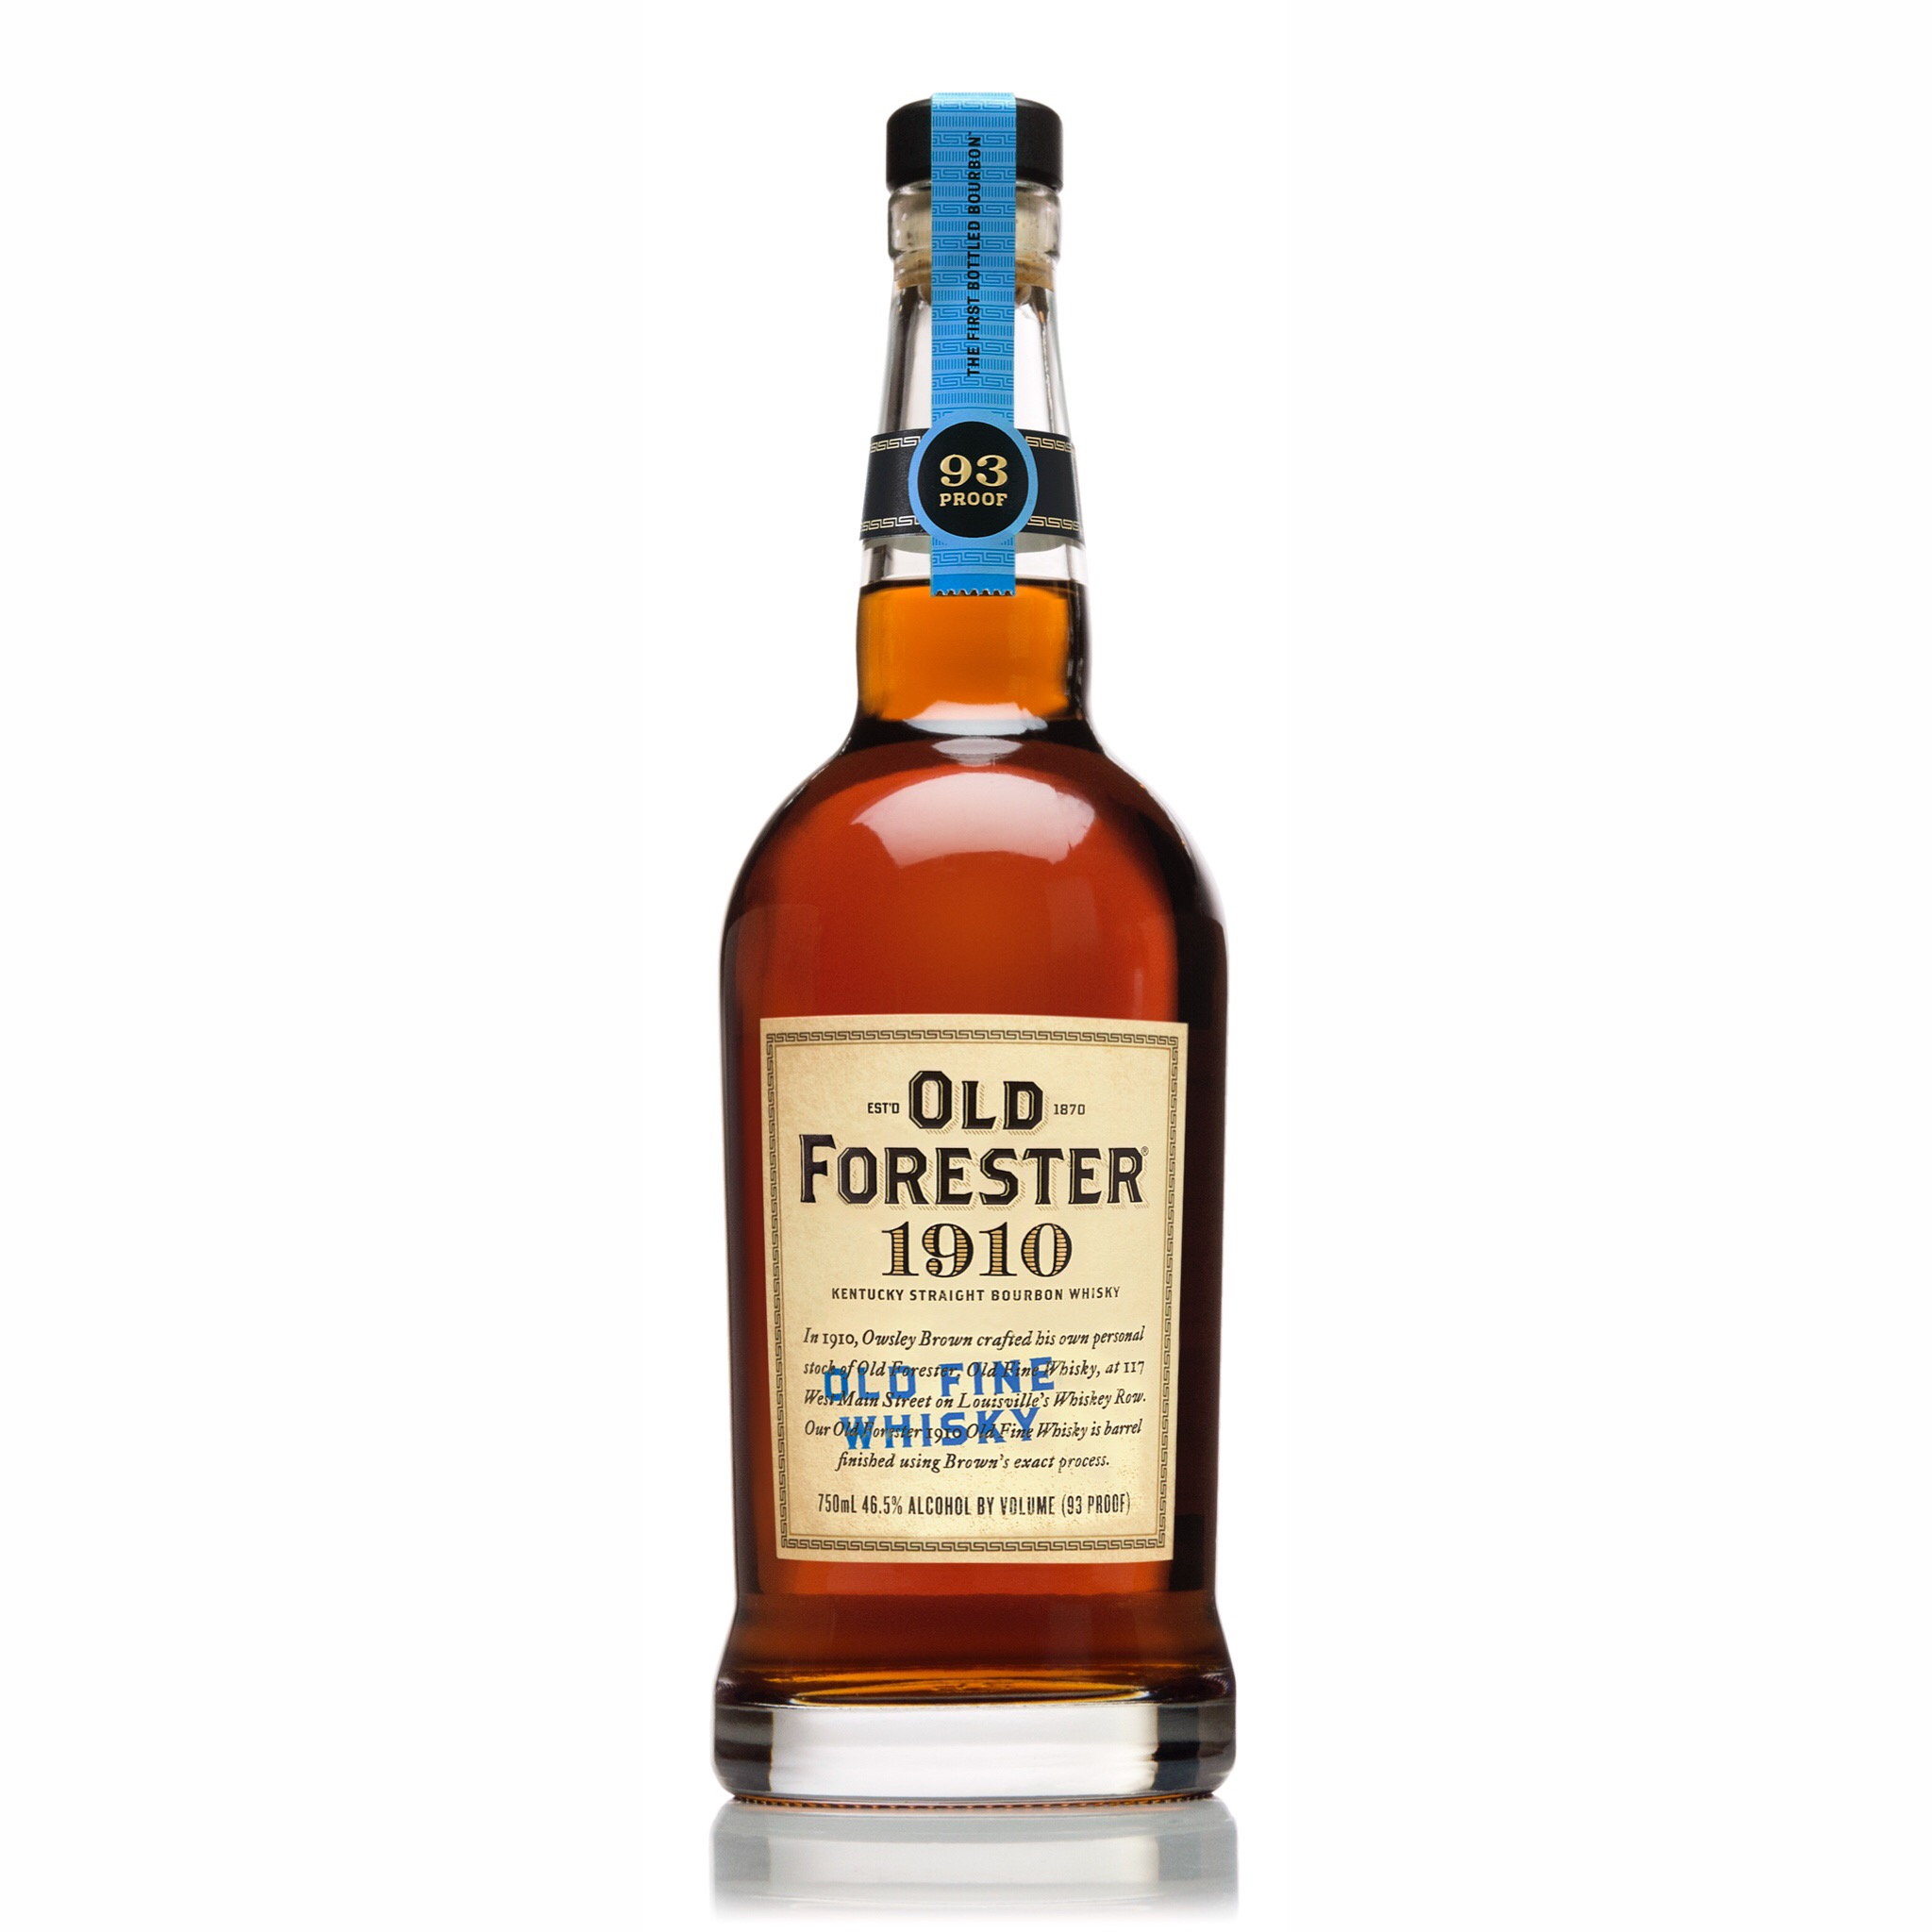 The New Old Forester 1910 Is the Perfect Dessert Whiskey